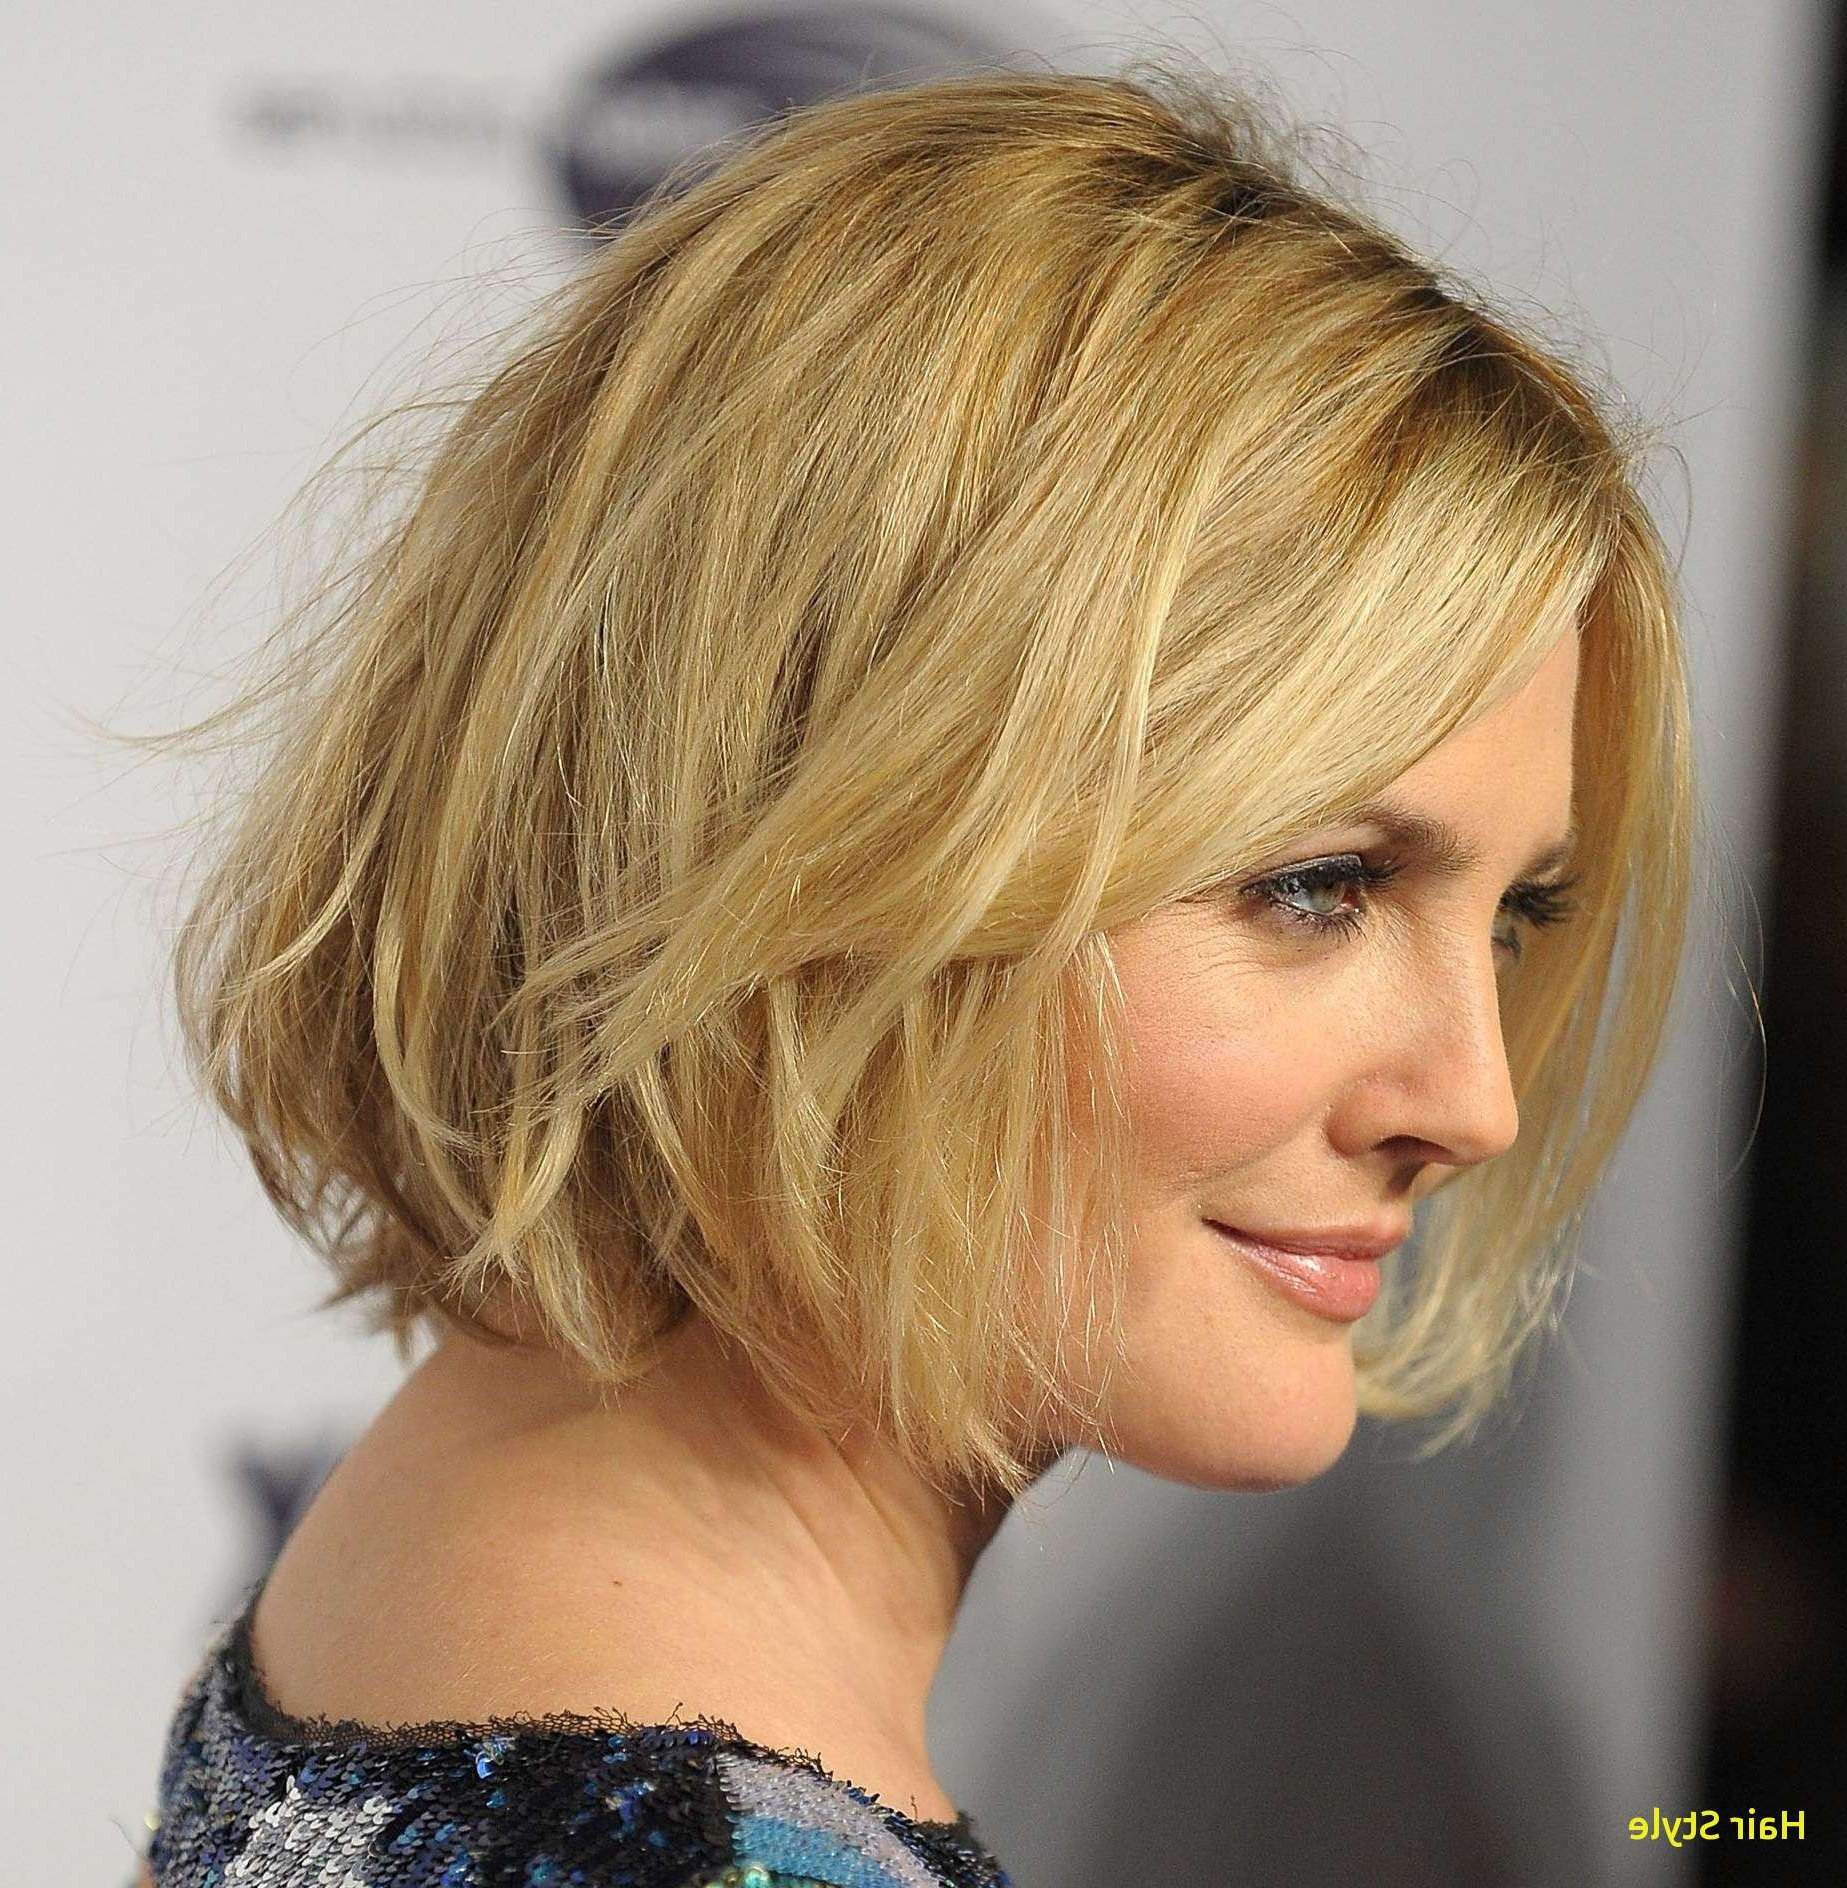 Fine Hair Round Face Short Hairstyles Awesome Elegant Hairstyles For With Short Hairstyles For A Round Face (View 20 of 25)